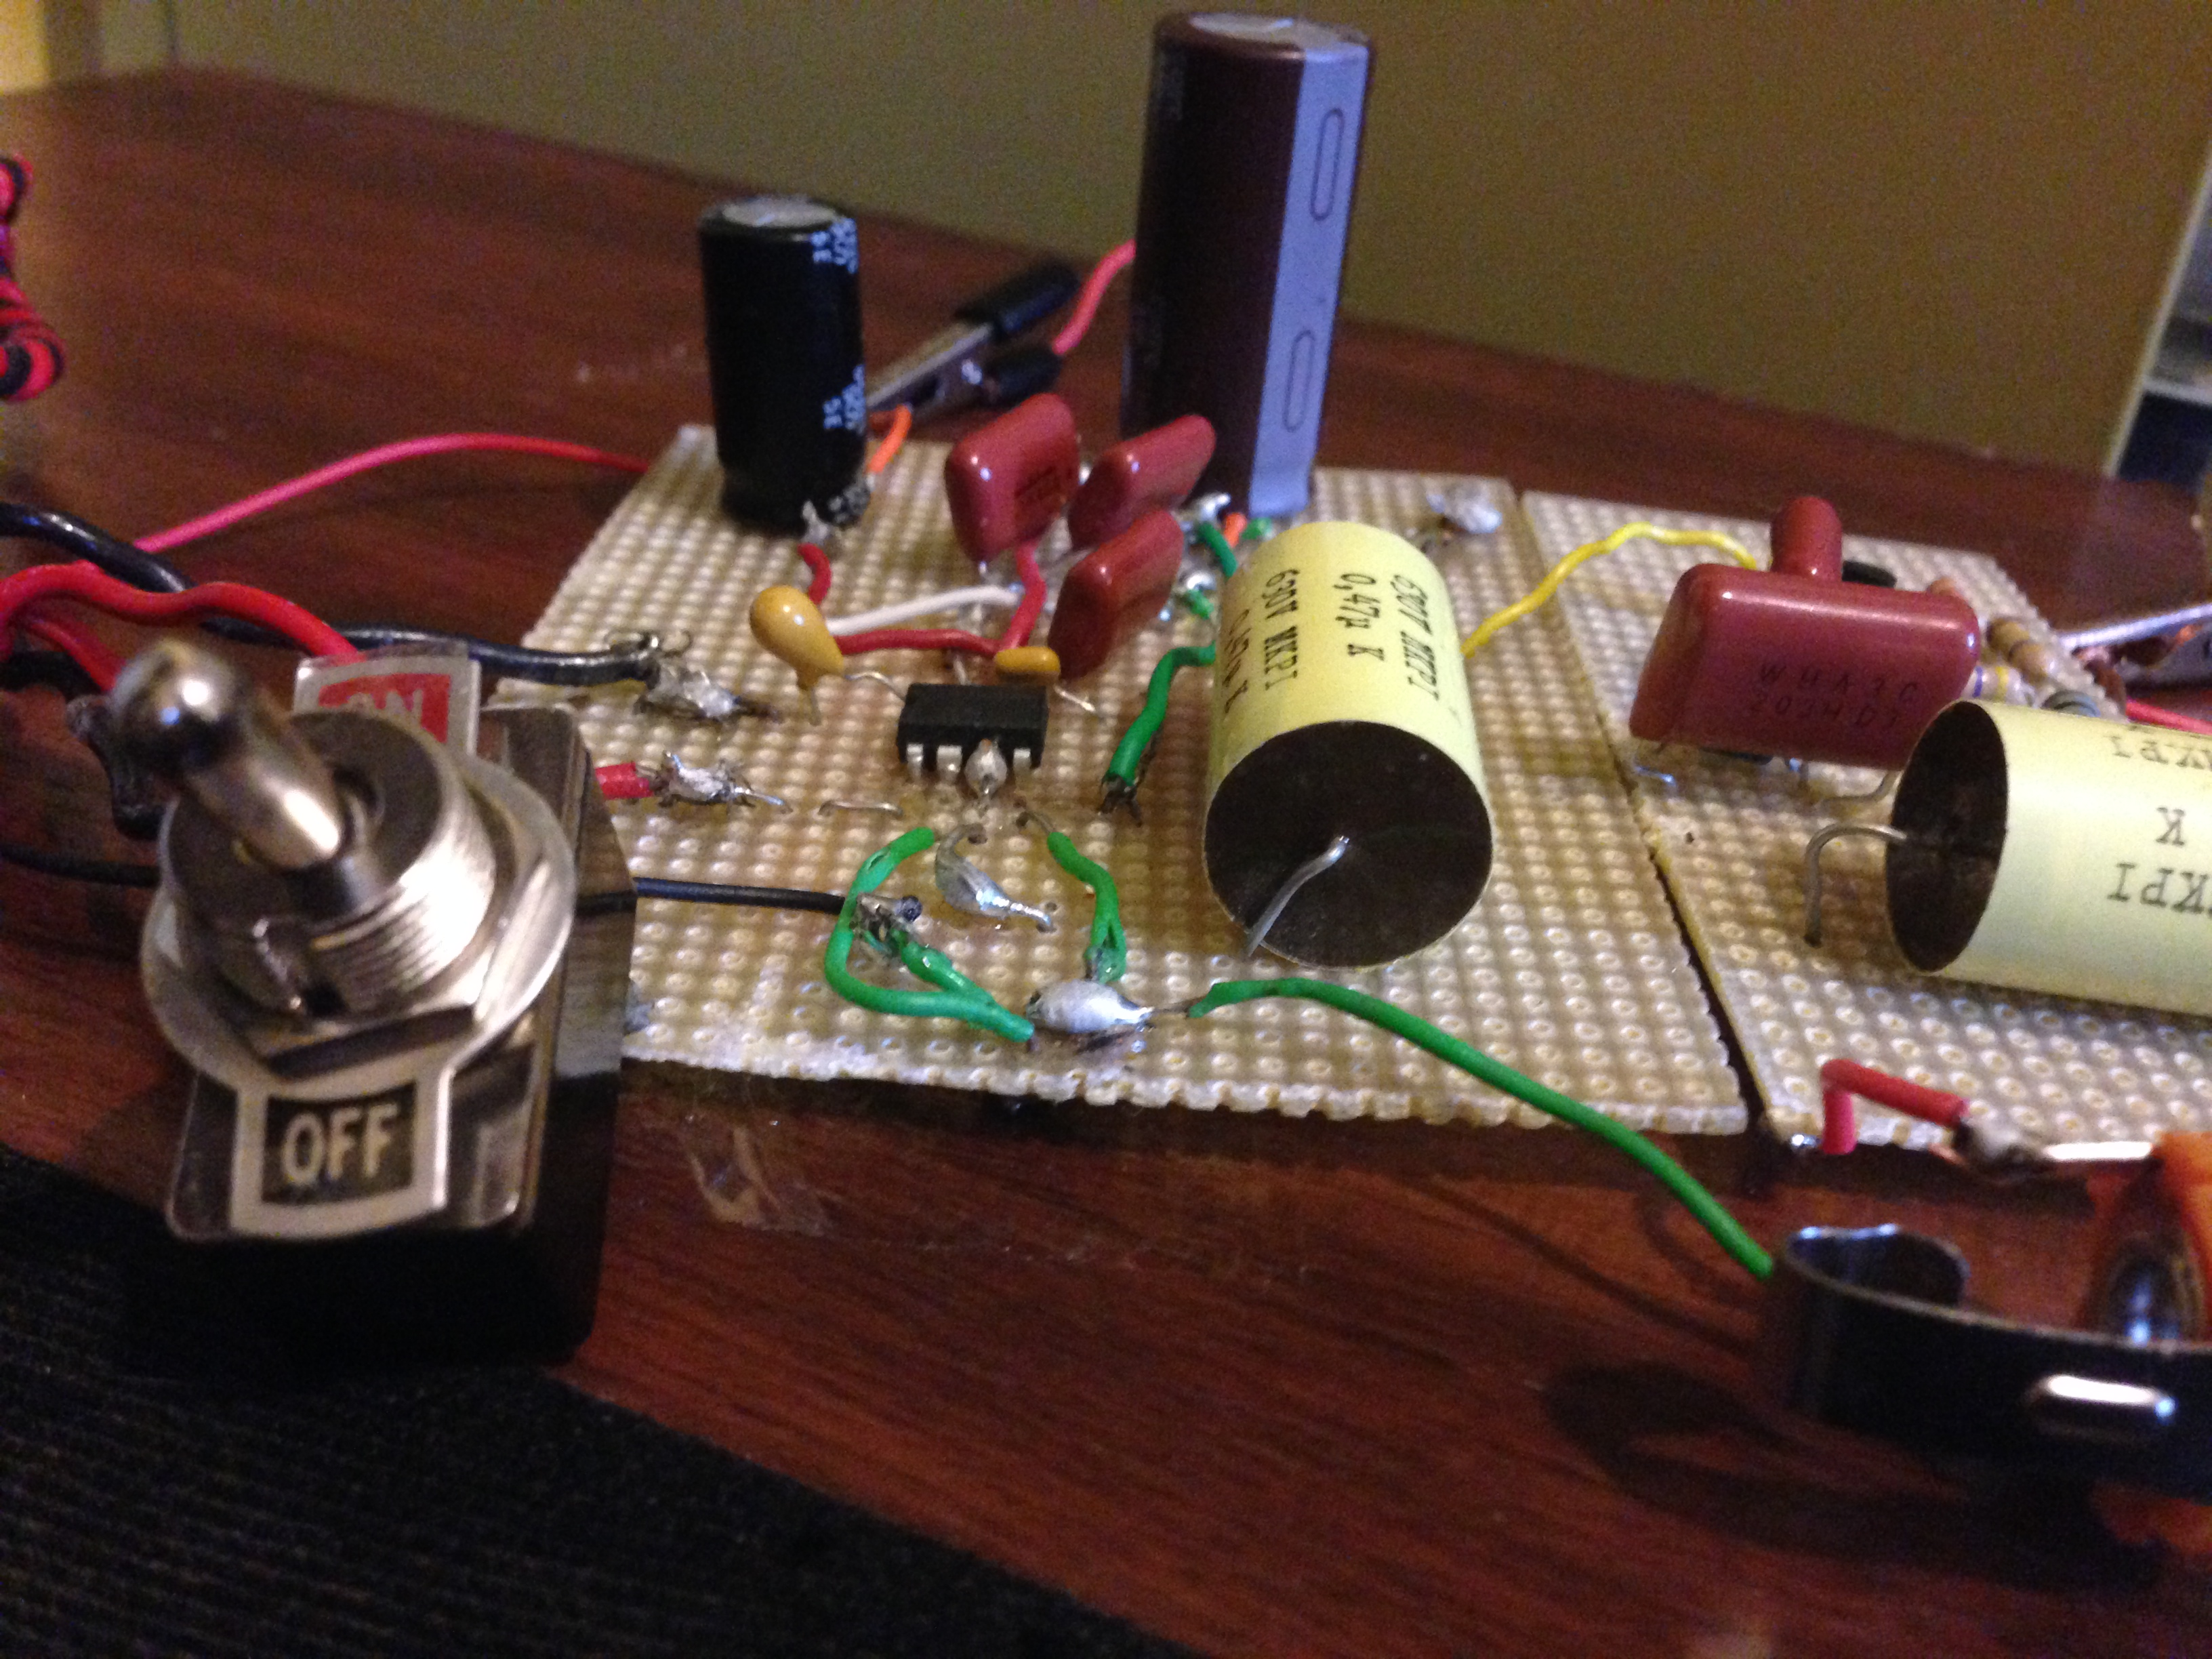 Cigar box guitar amp with LM386 + JFET preamp guide with